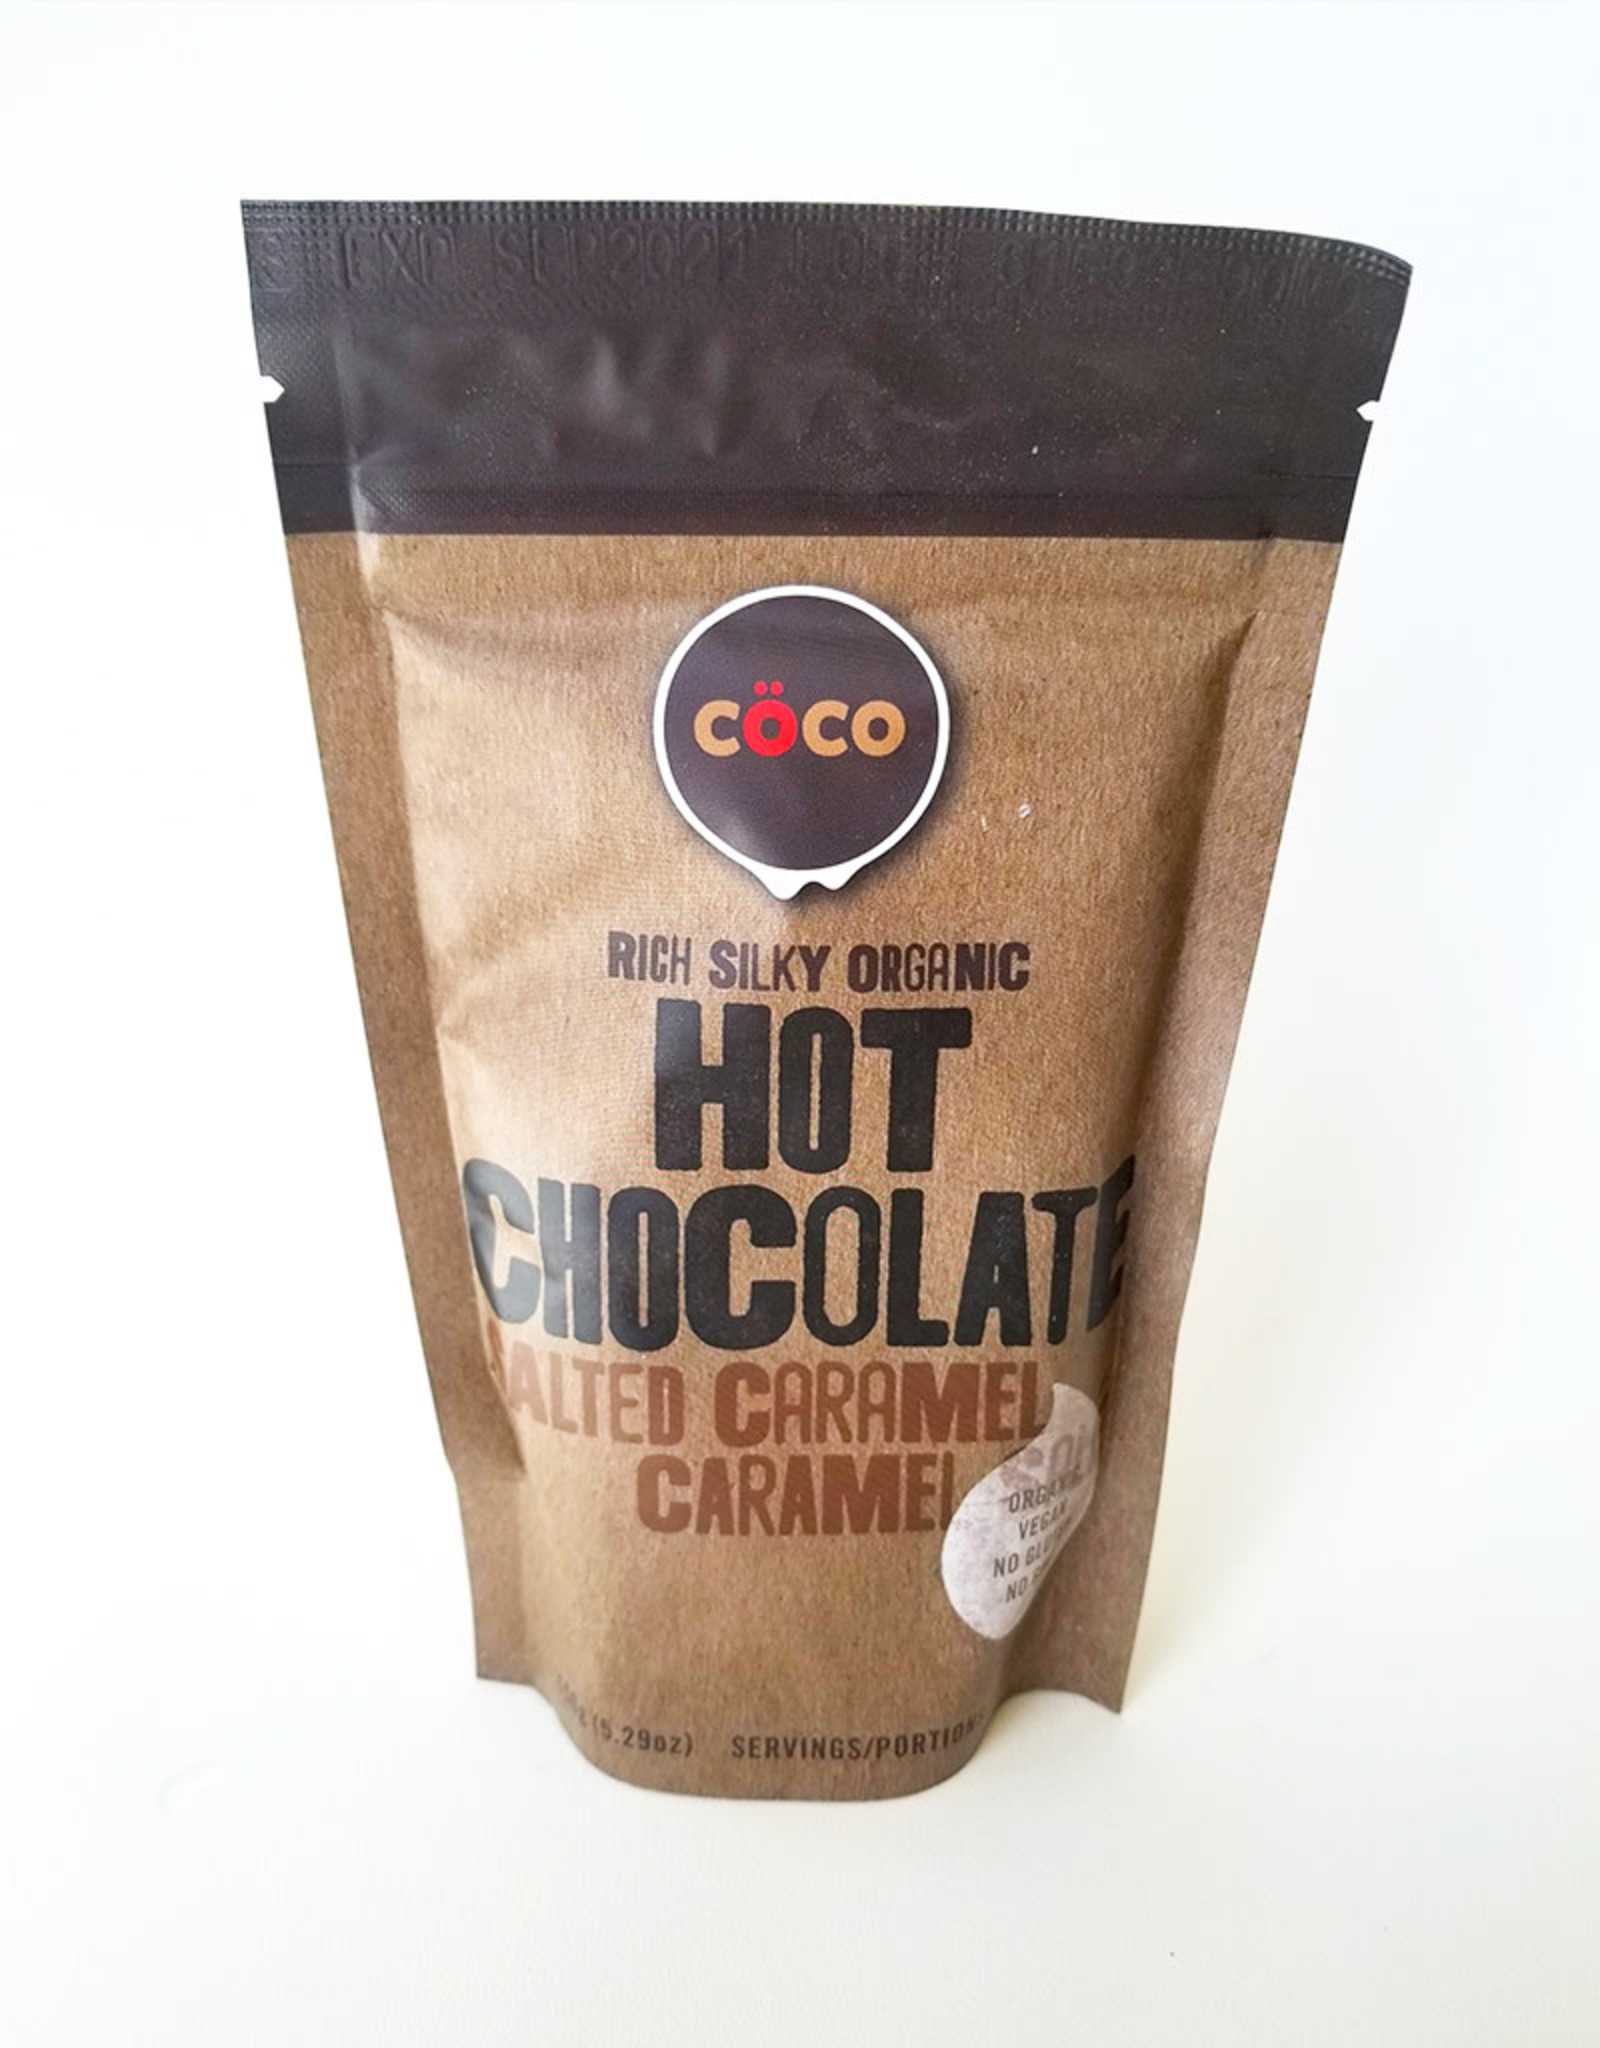 COCO COCO - Organic Hot Chocolate, Salted Caramel